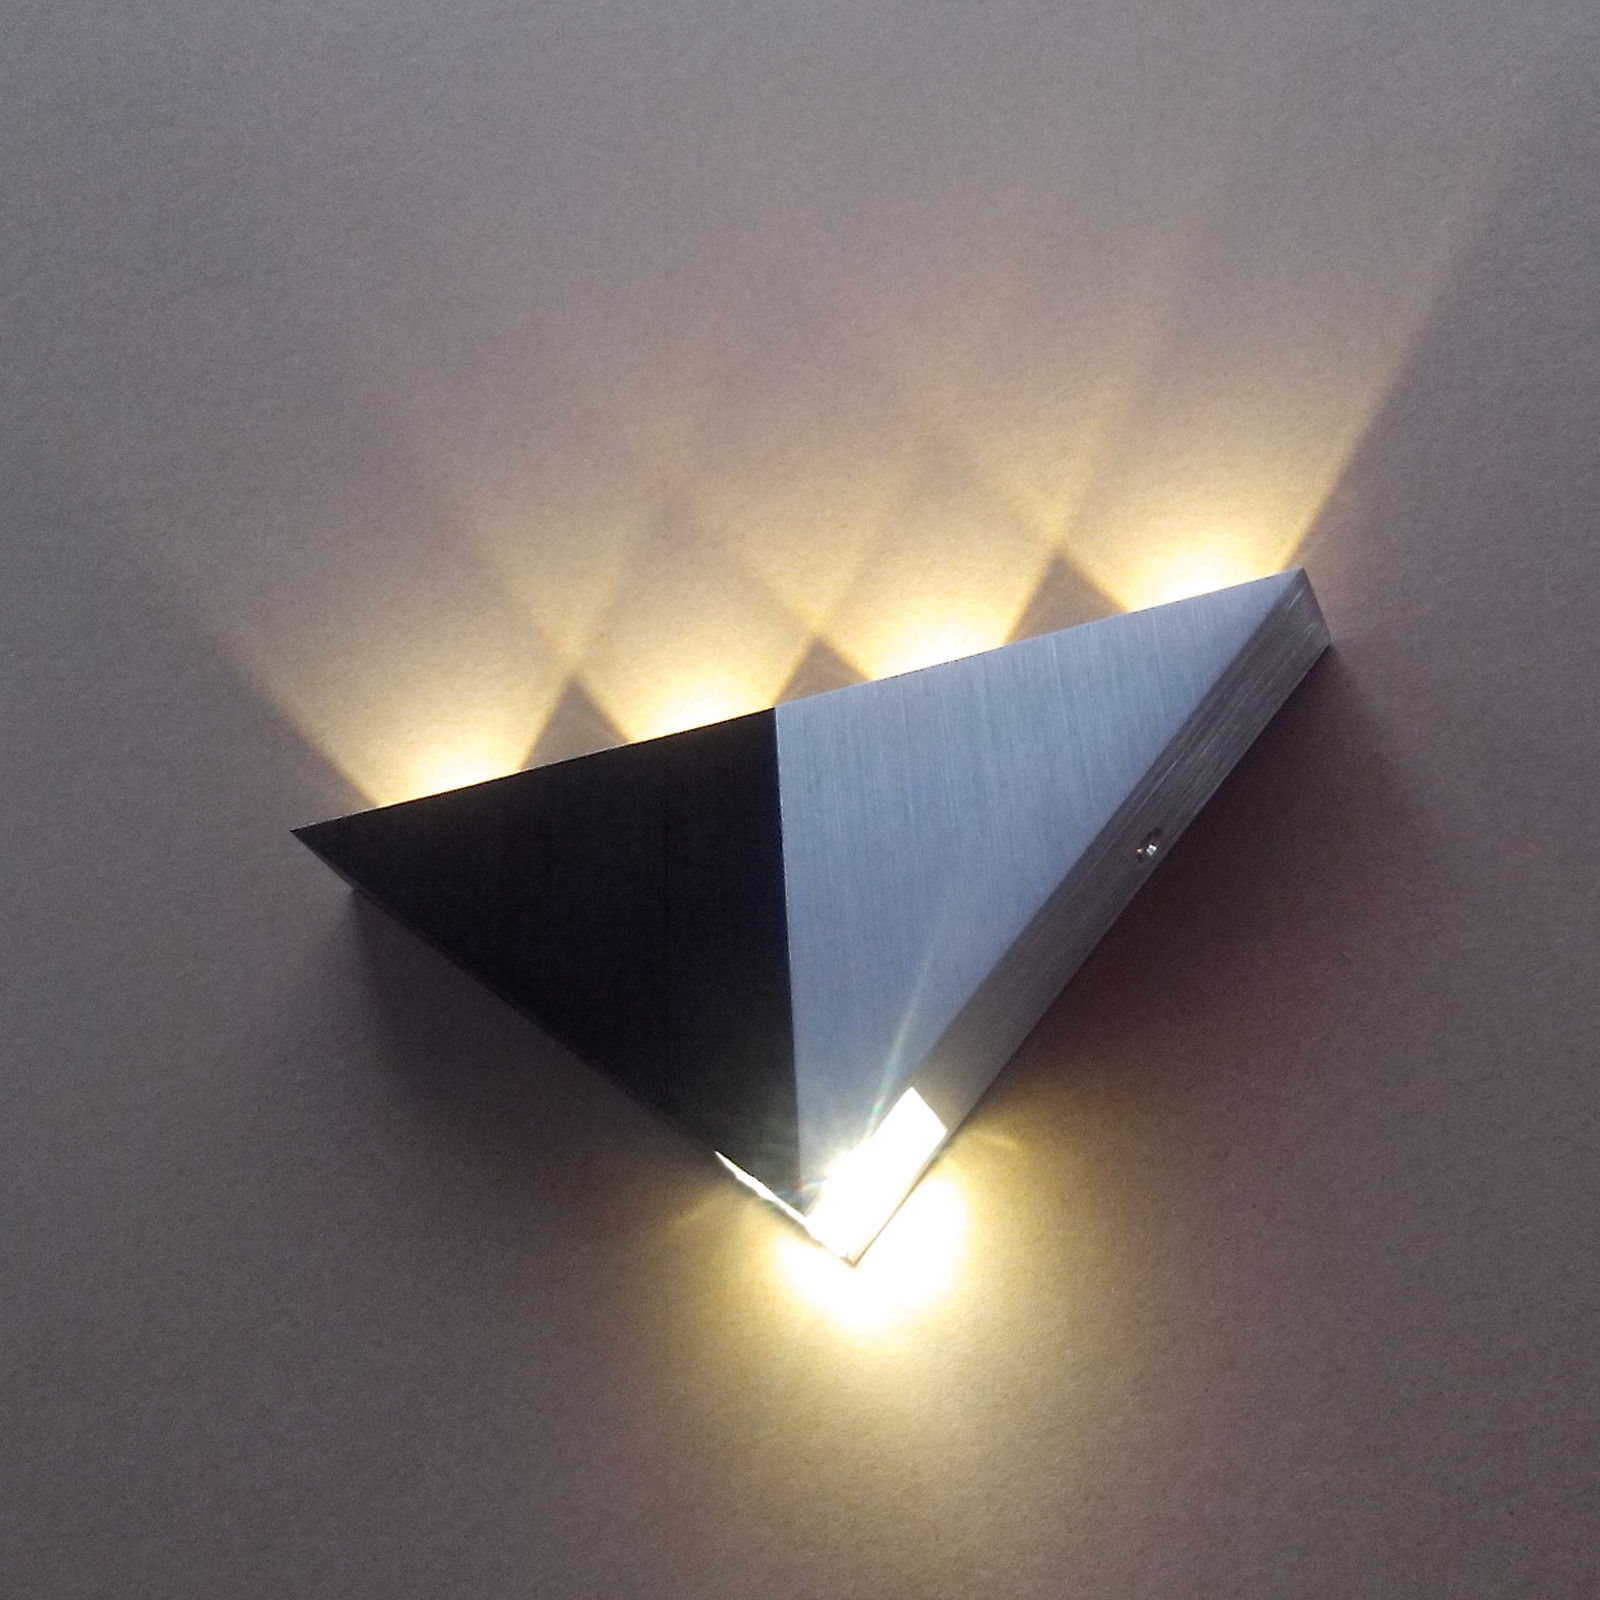 5-8 LED Modern Aluminum Up Down Wall Light Sconce Indoor ...